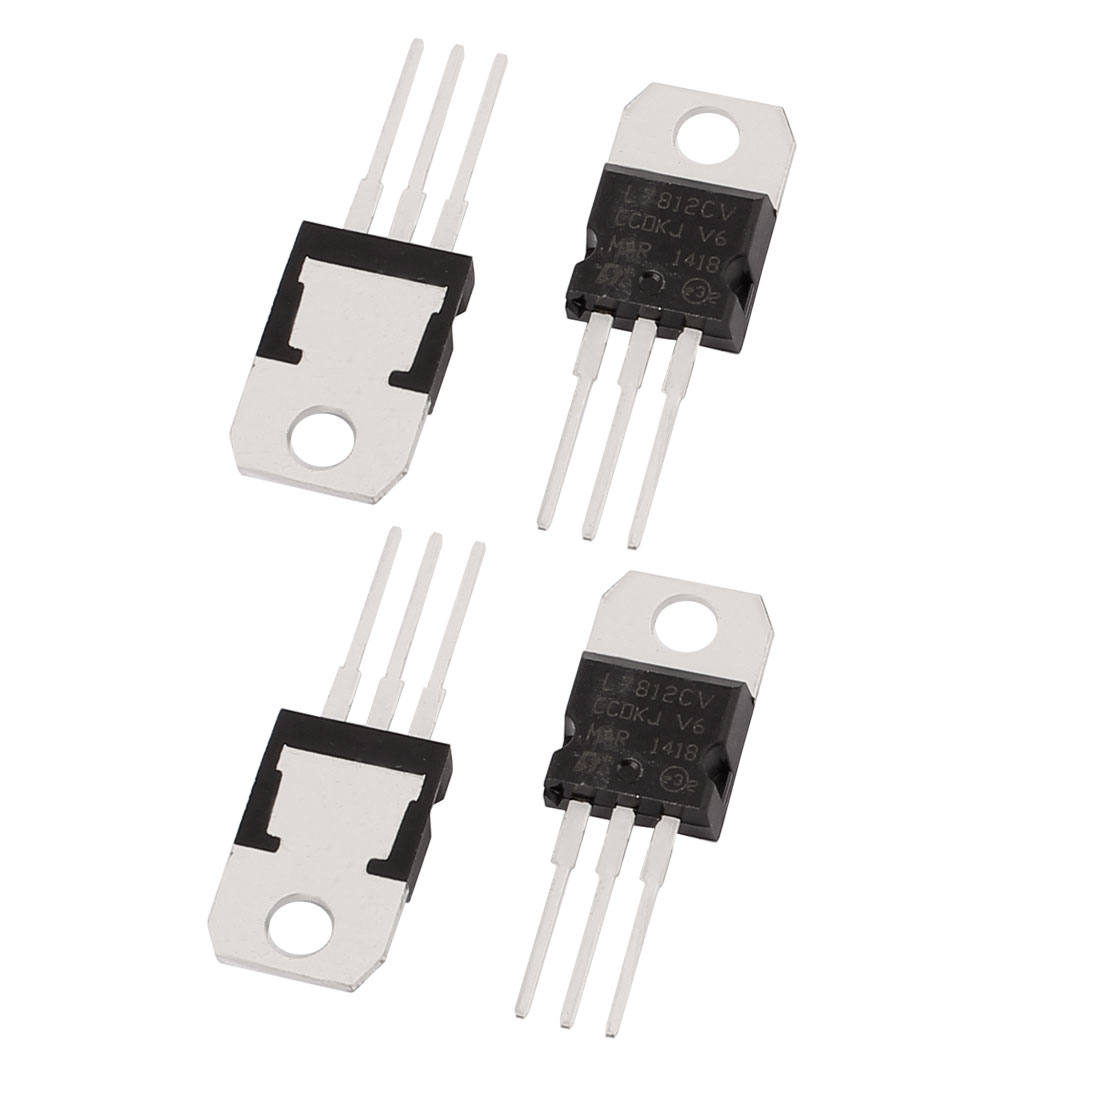 4 Pcs 12V 1A 3 Pin Terminals L7812CV Positive Voltage Regulator TO-220